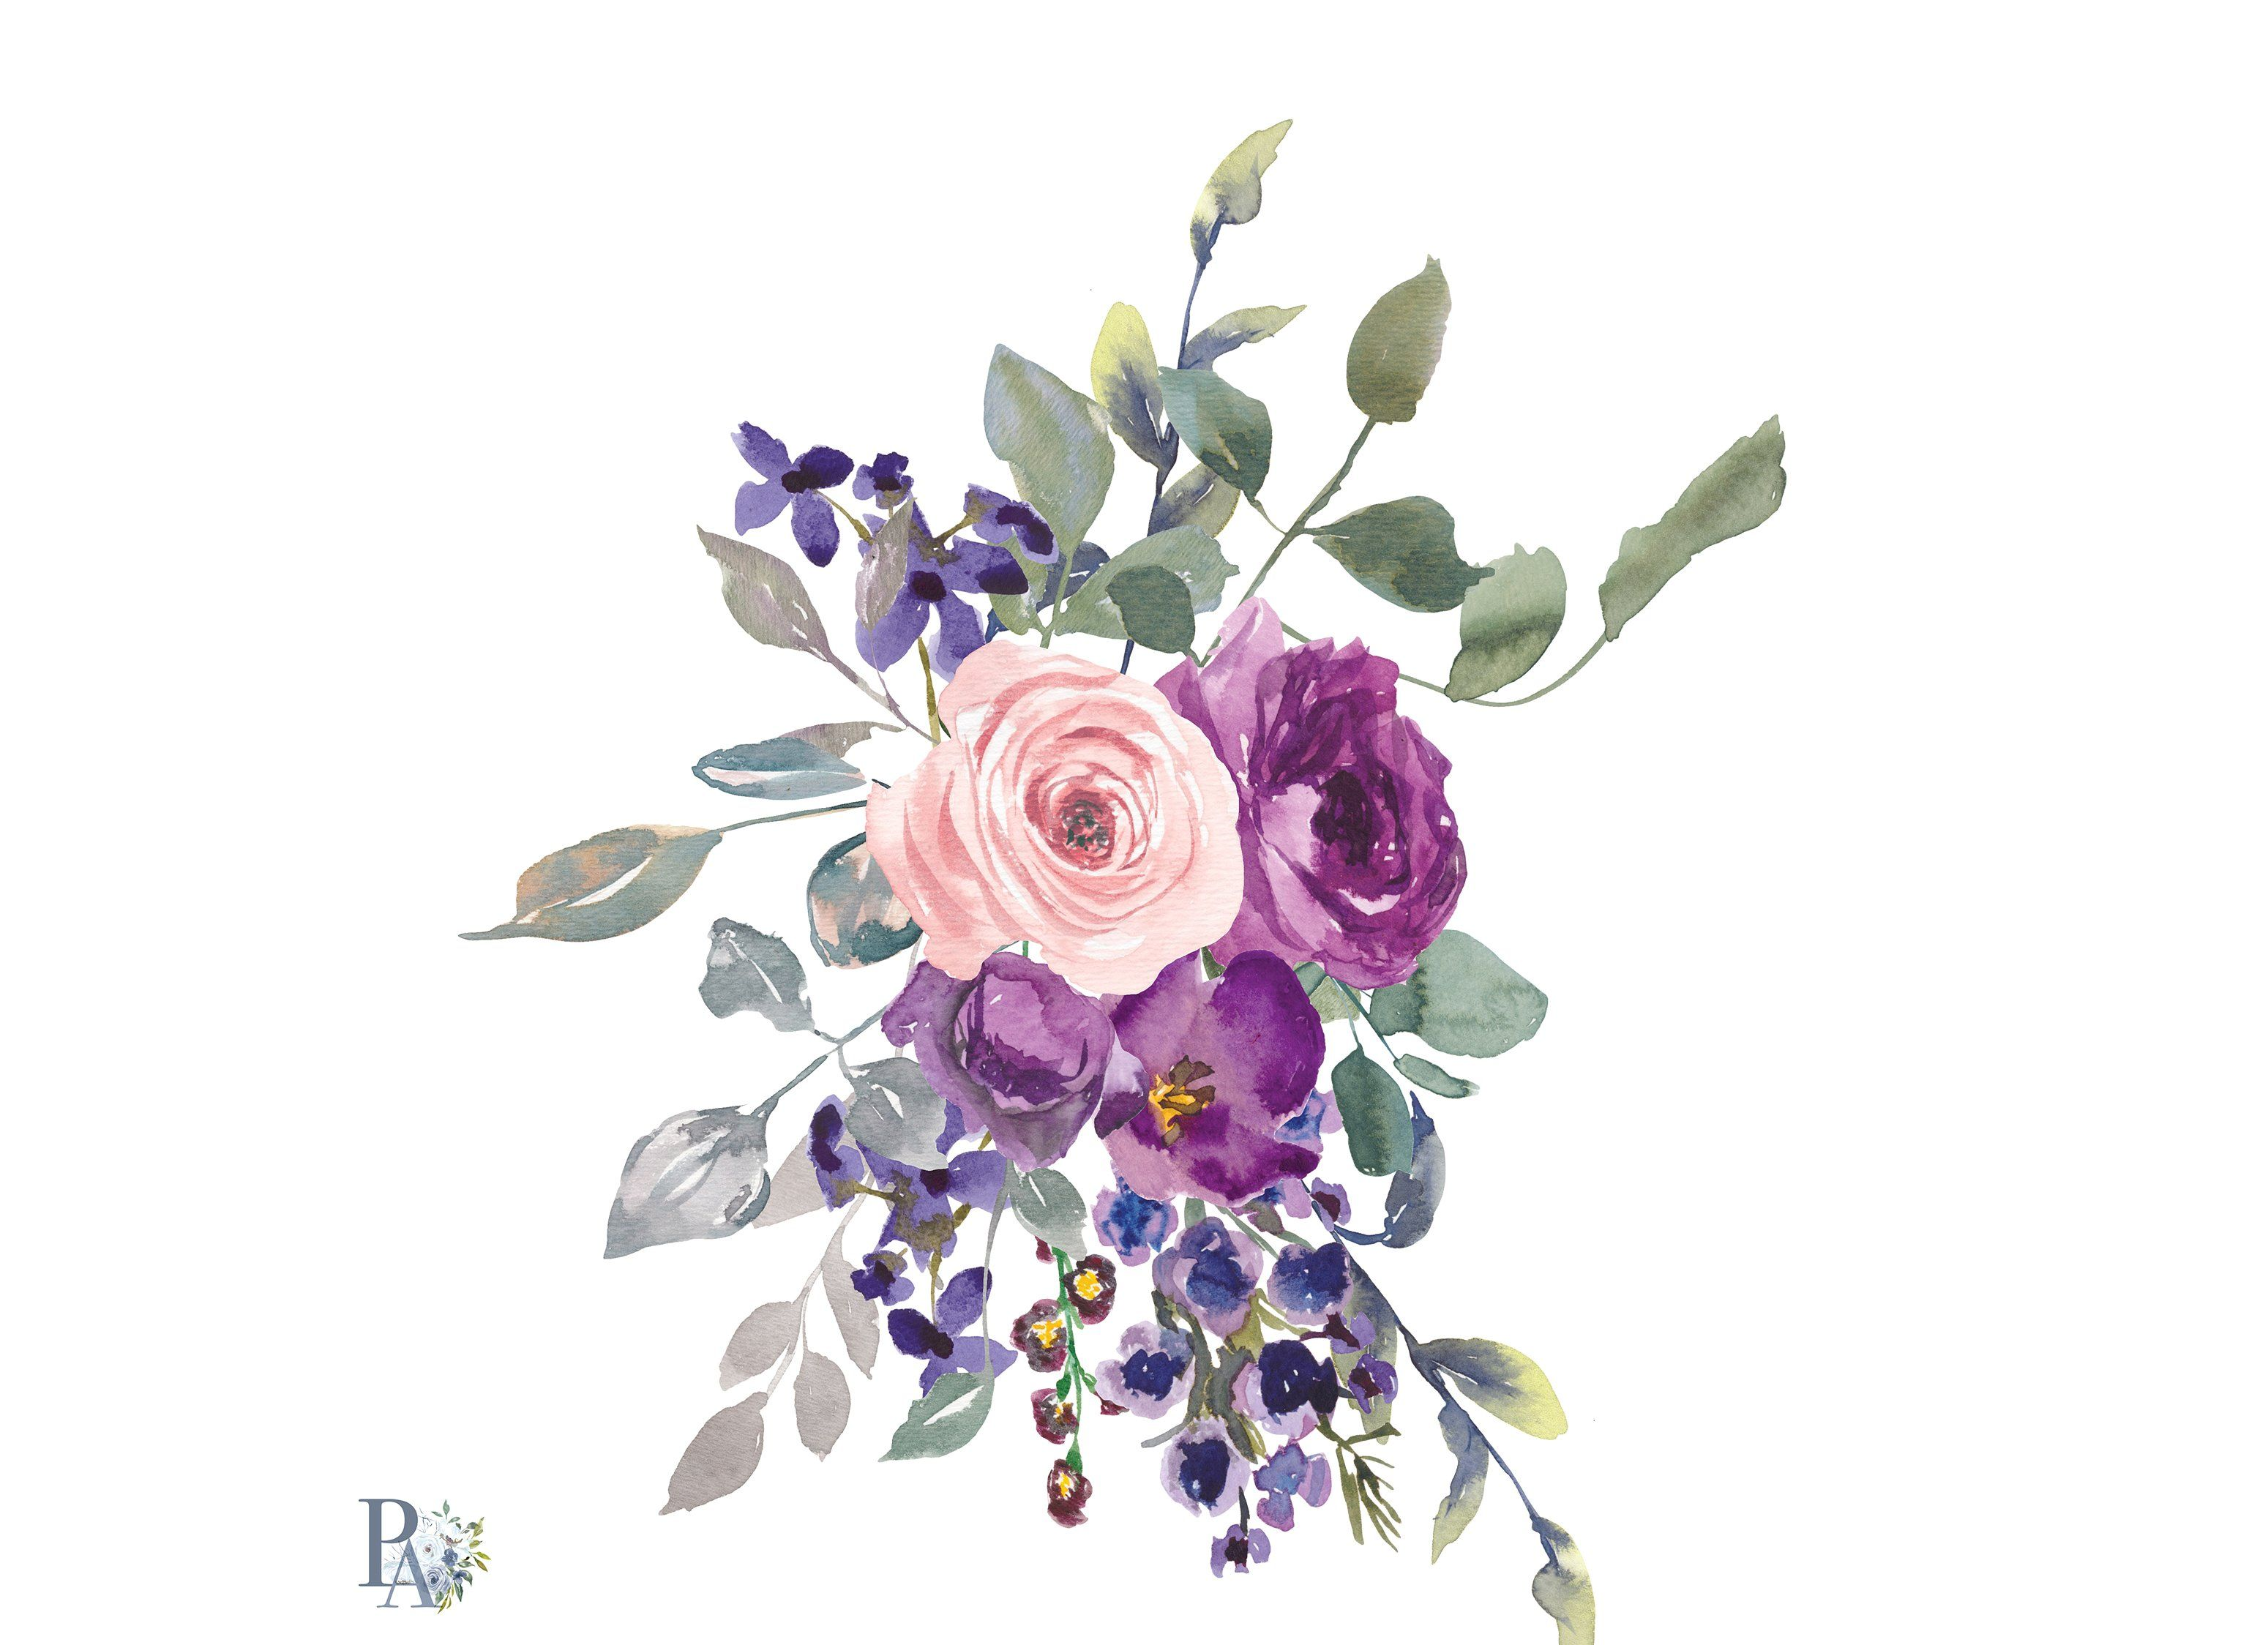 Watercolor Plum Blush Flowers Clipar Flower Illustration Dark